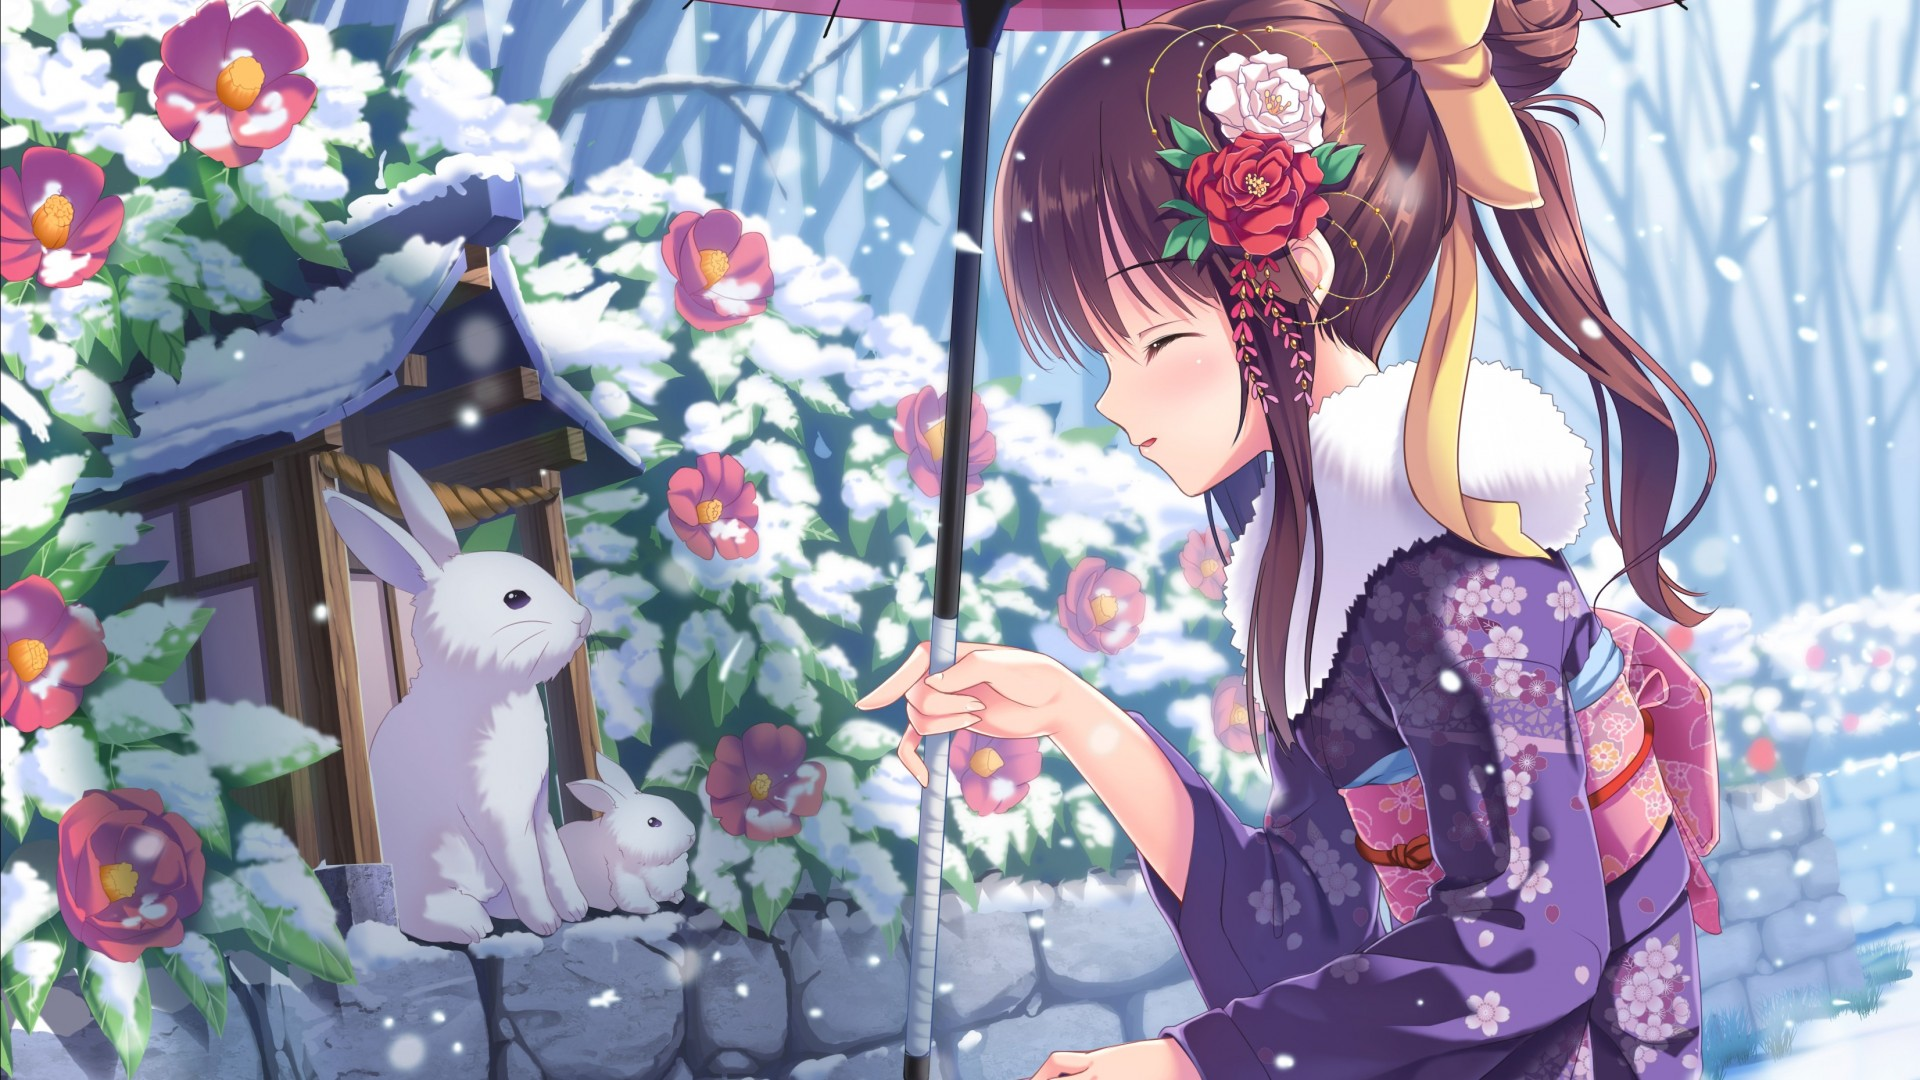 A collection of the top 35 pastel aesthetic anime wallpapers and backgrounds. Wallpaper anime, girl, beauty, winter, rabbits, snow, 4k